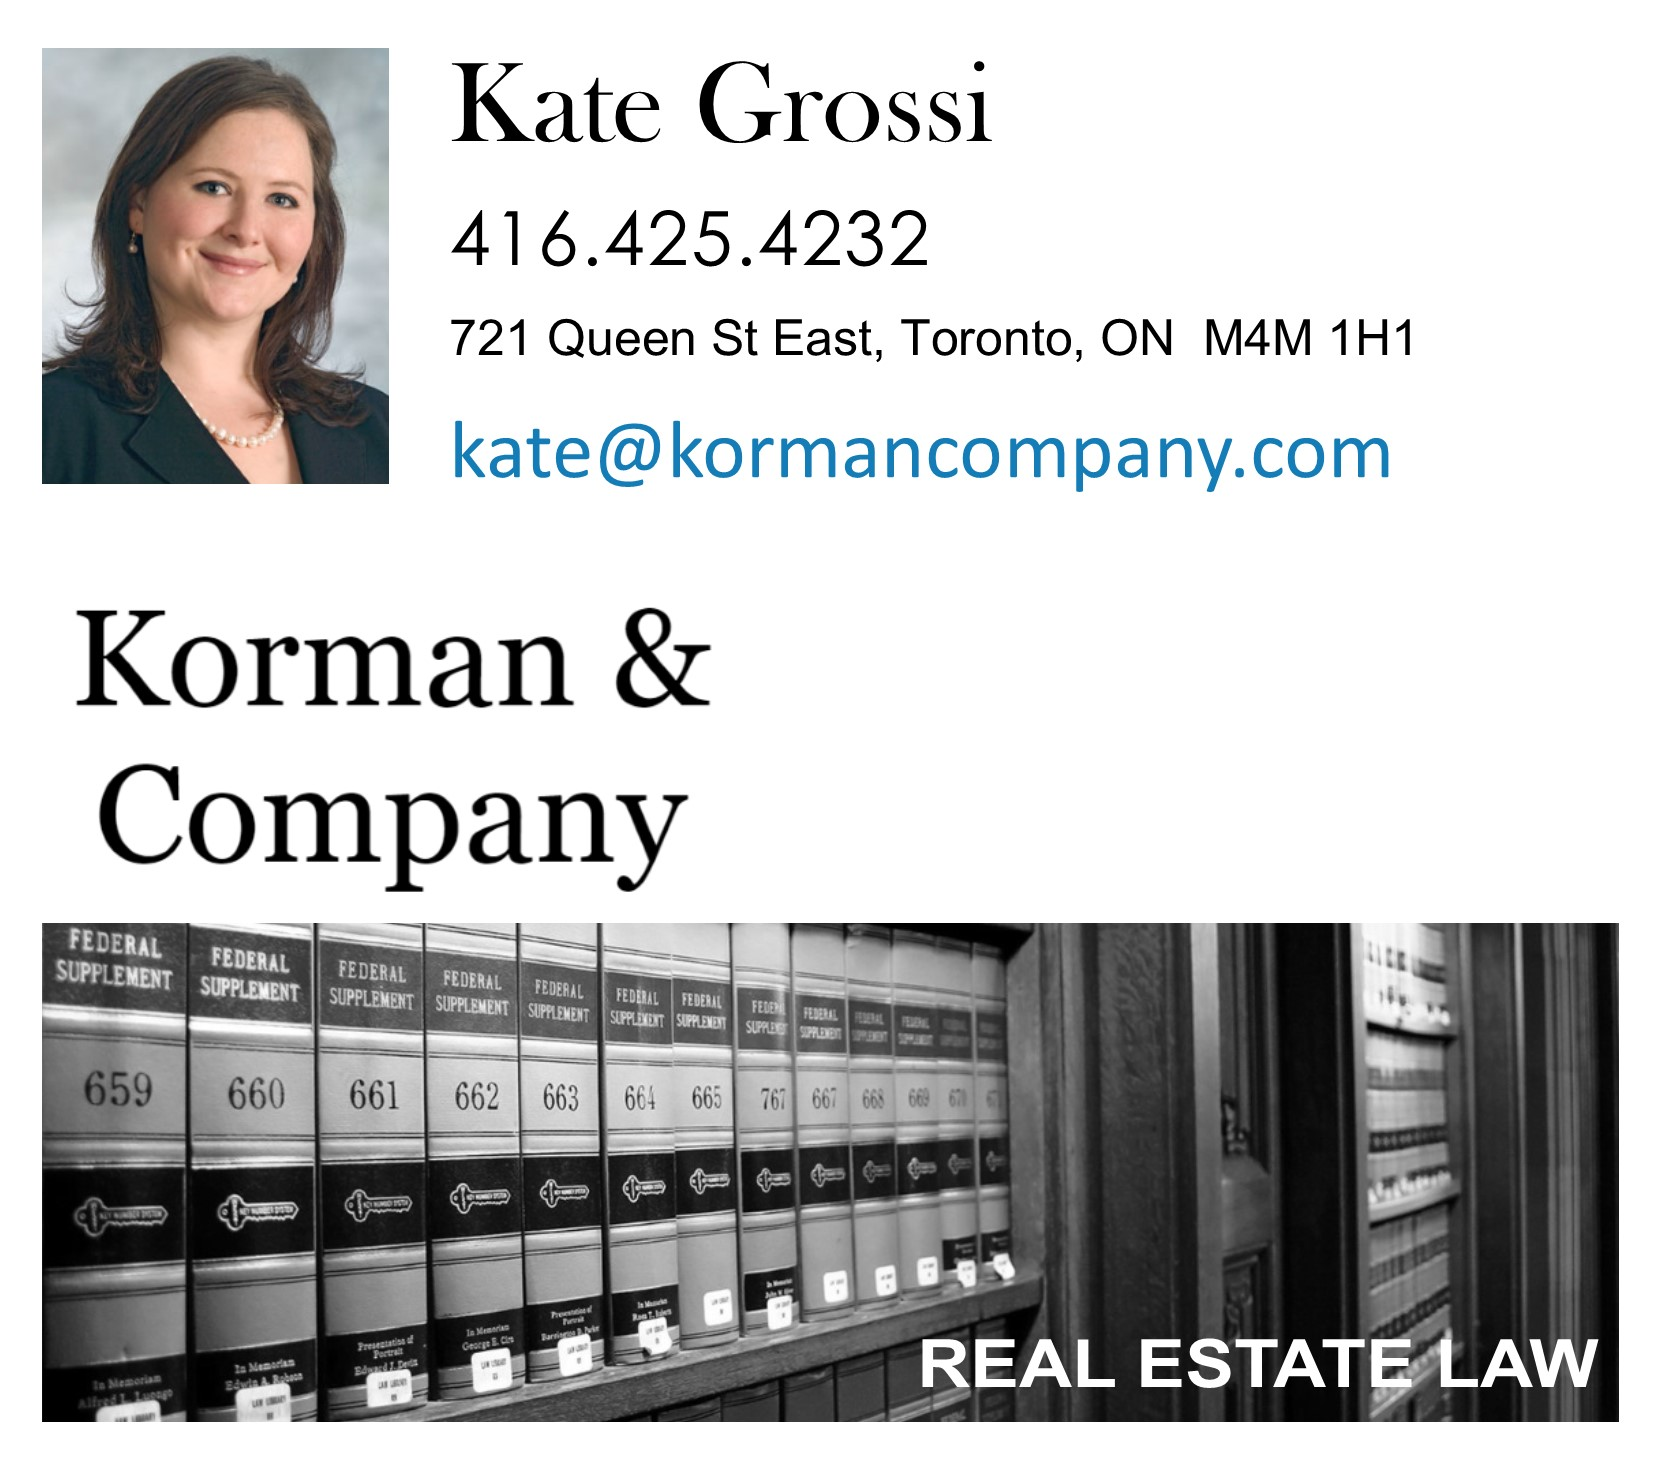 Kate Grossi Korman Company.jpg